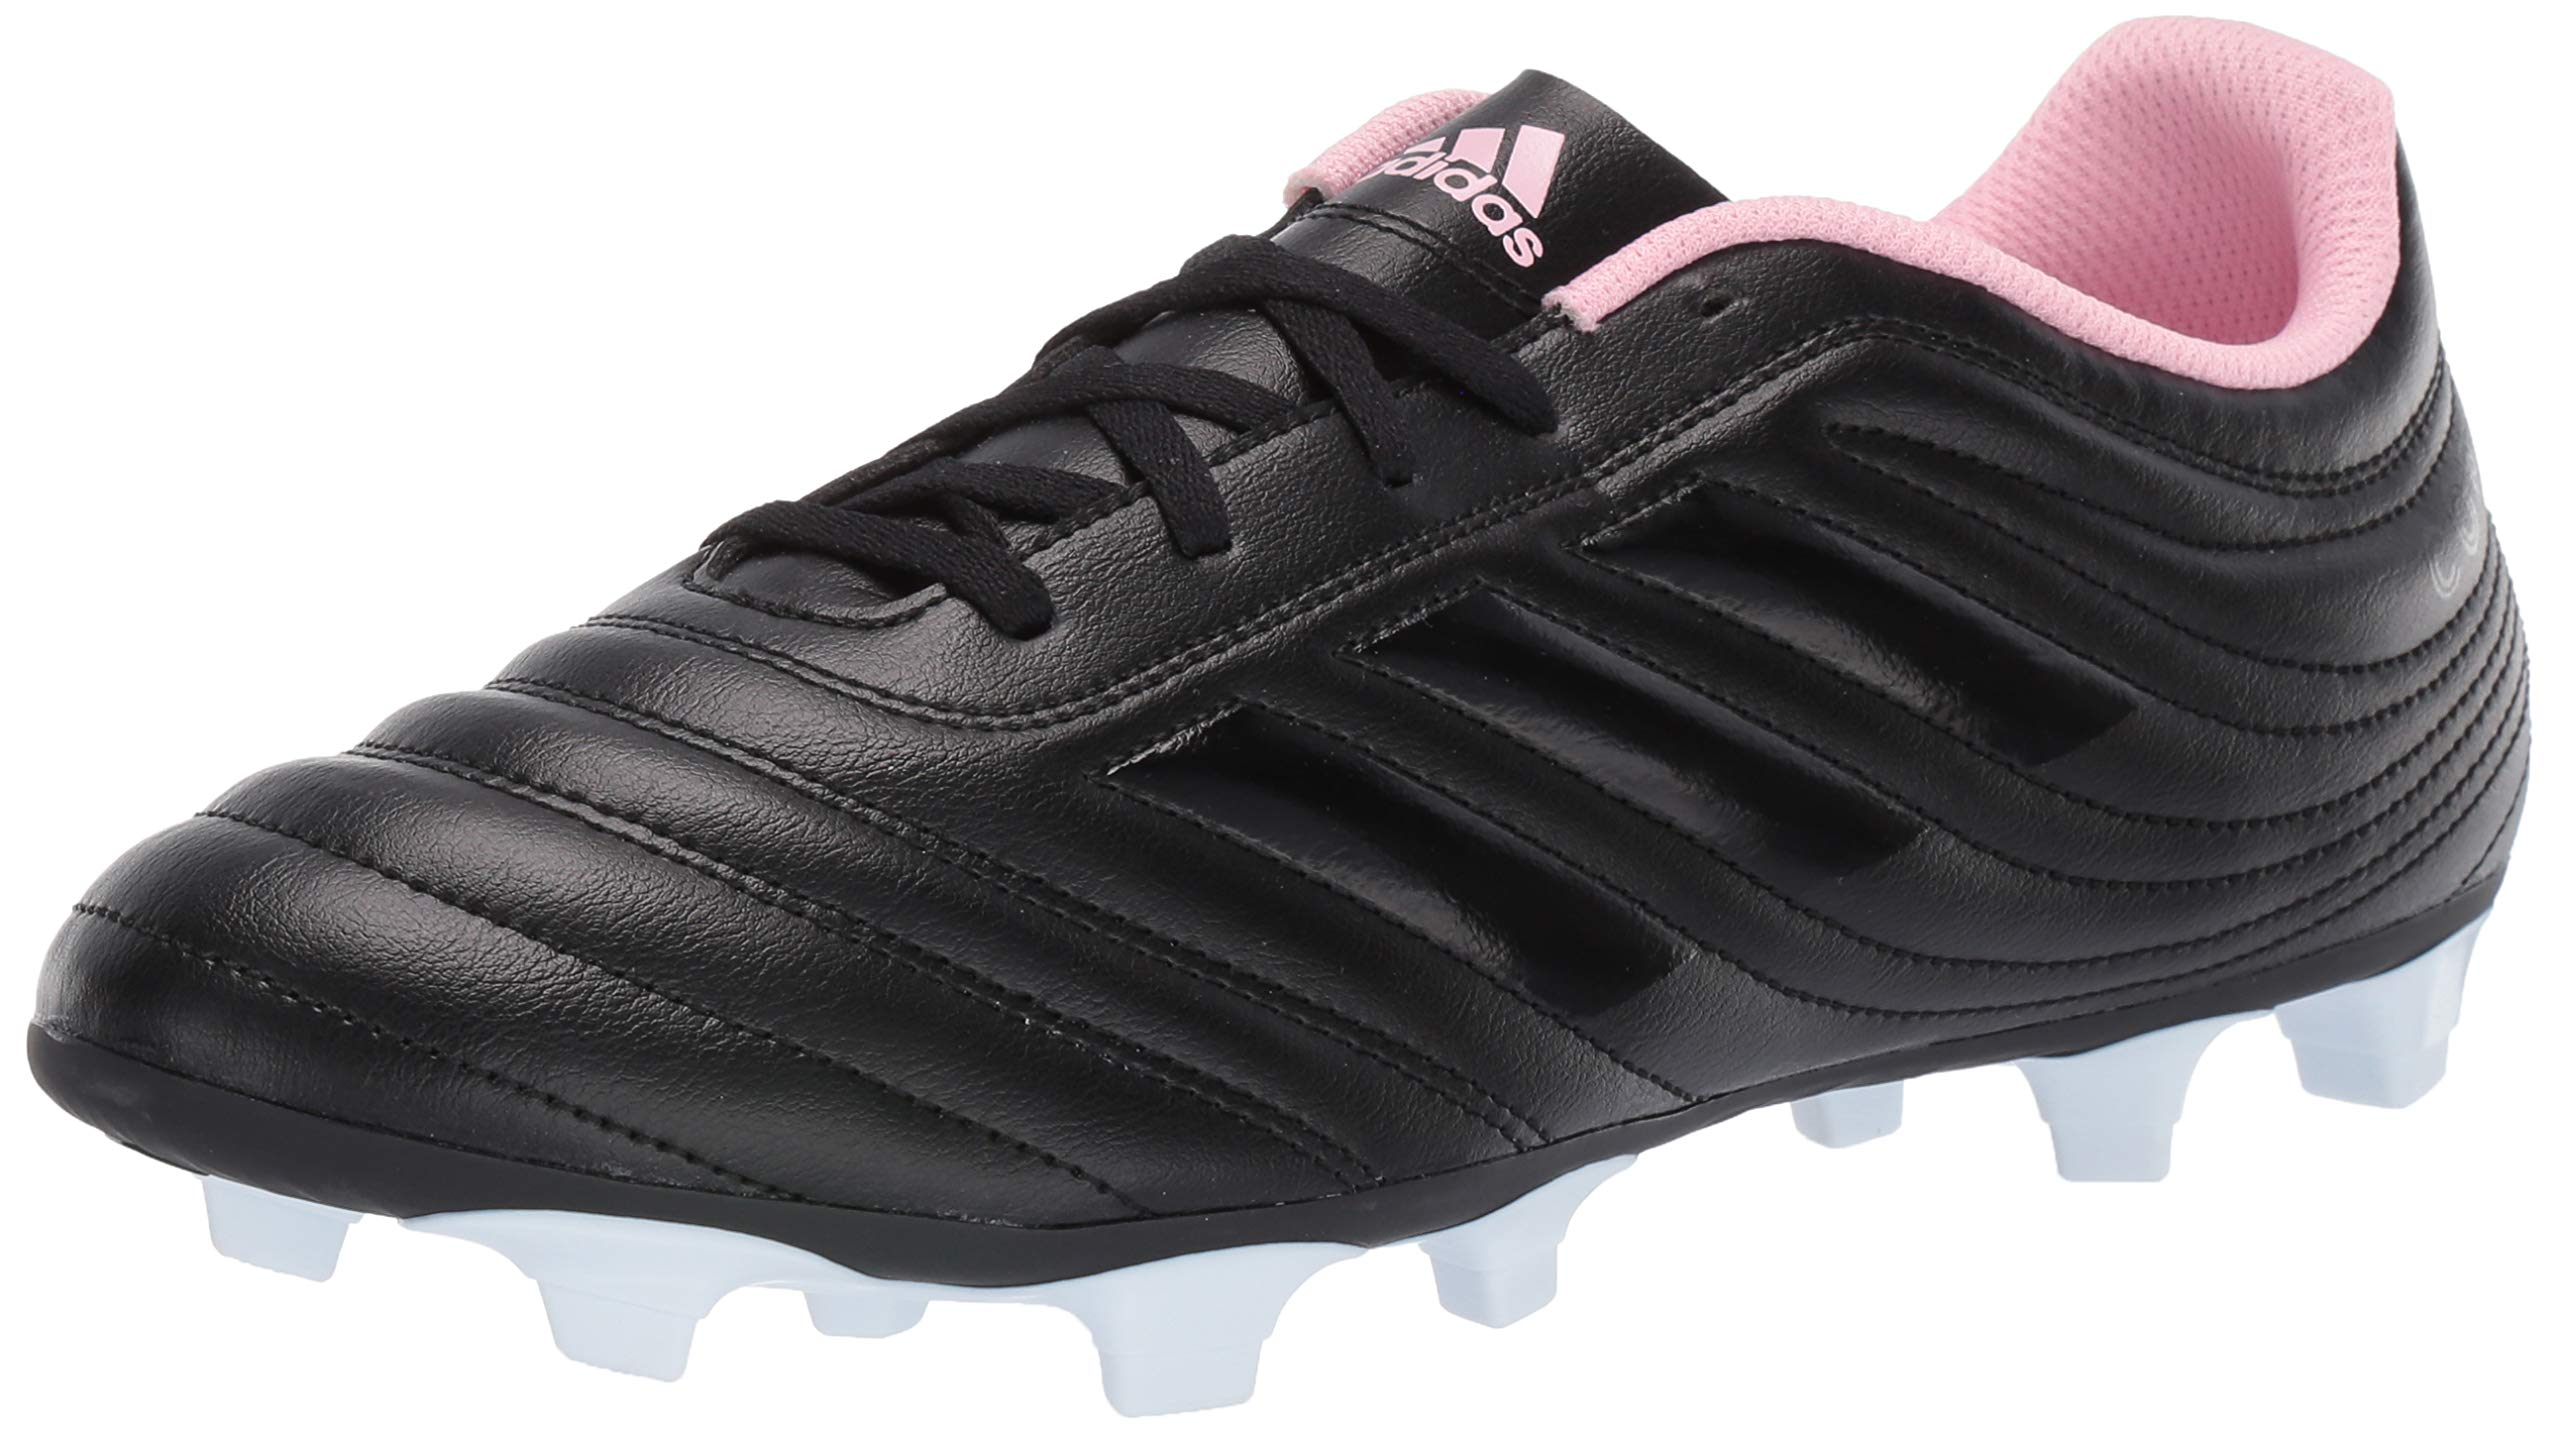 adidas Copa 19.4 Firm Ground, Black/Clear/True Pink, 5.5 M US